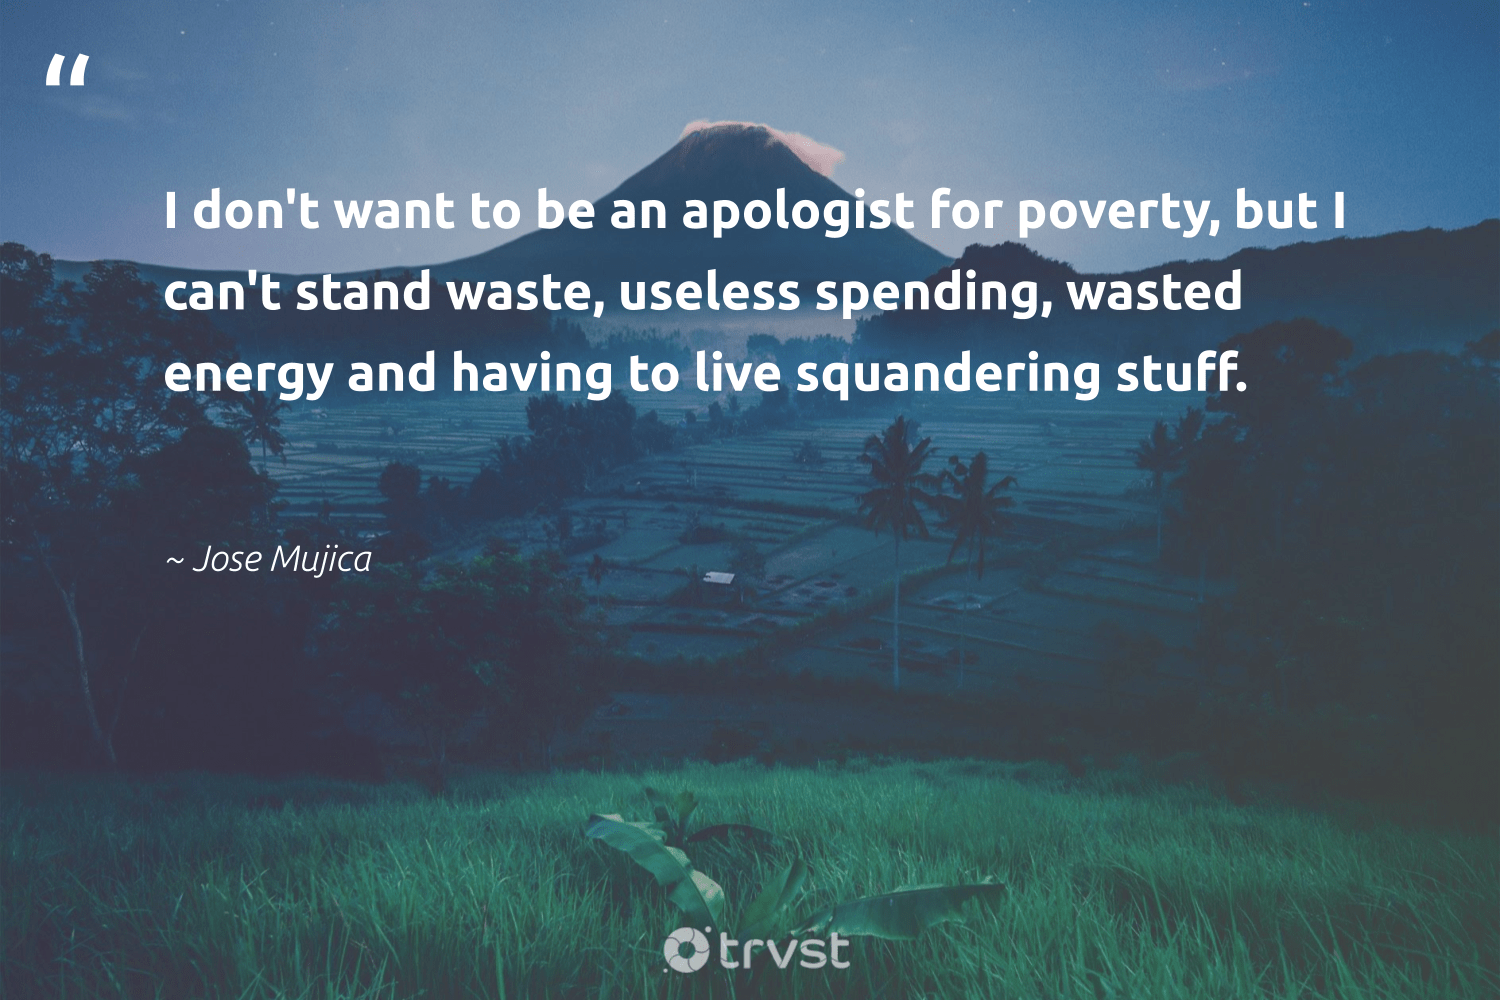 """""""I don't want to be an apologist for poverty, but I can't stand waste, useless spending, wasted energy and having to live squandering stuff.""""  - Jose Mujica #trvst #quotes #waste #energy #poverty #endpoverty #changeahabit #makeadifference #bethechange #loveourplanet #weareallone #planetearthfirst"""